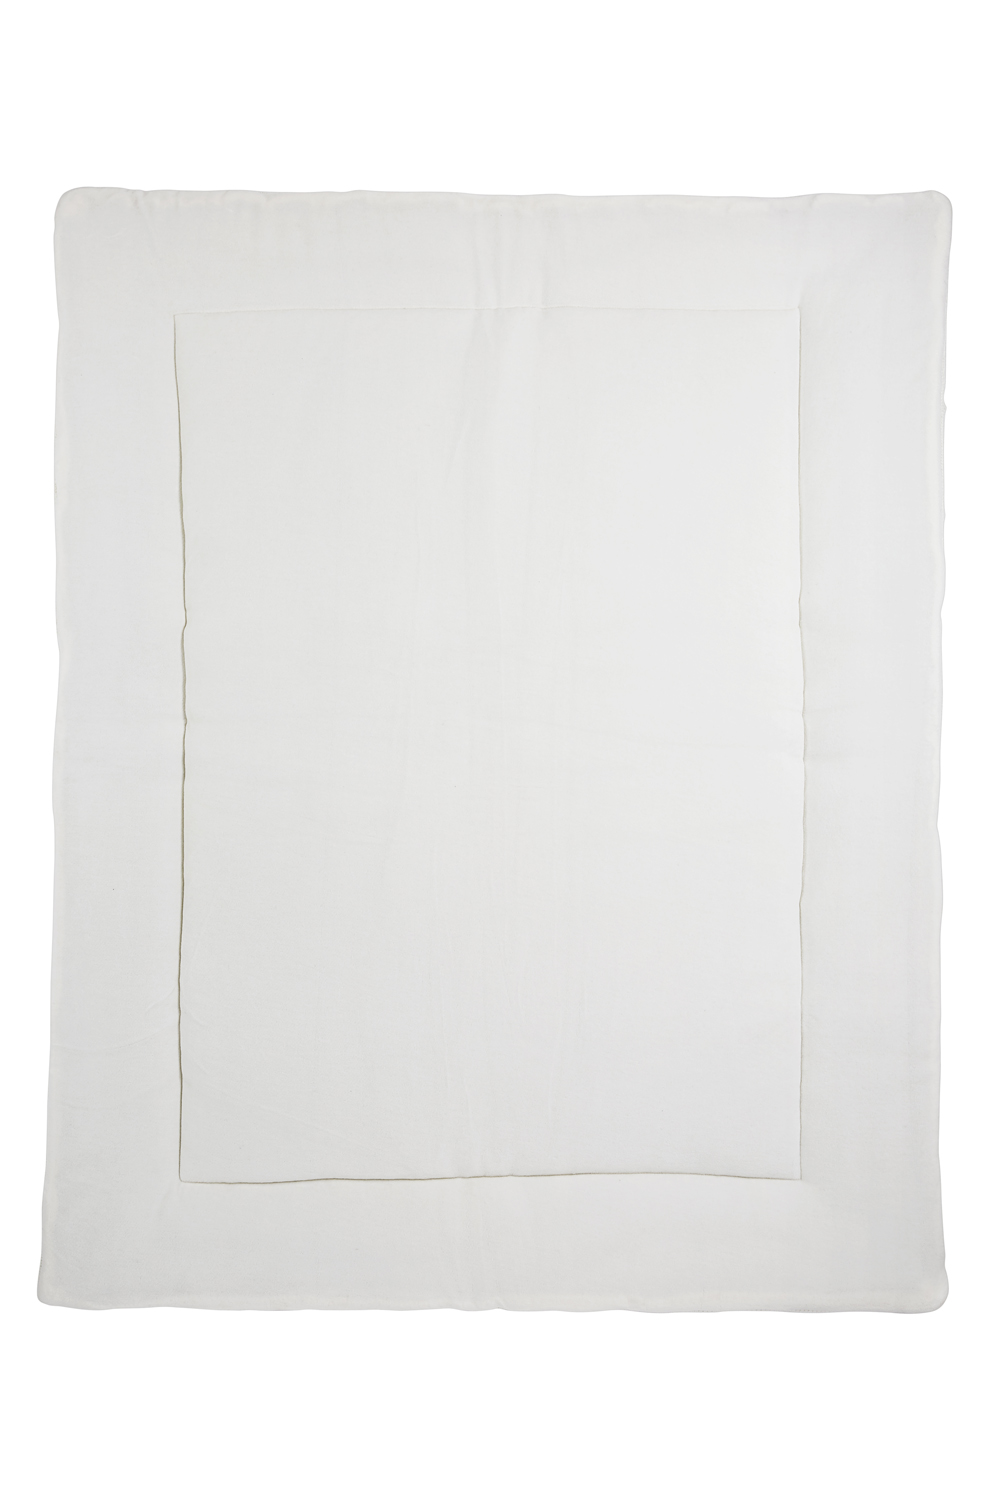 Boxkleed Knots - Offwhite - 77x97cm